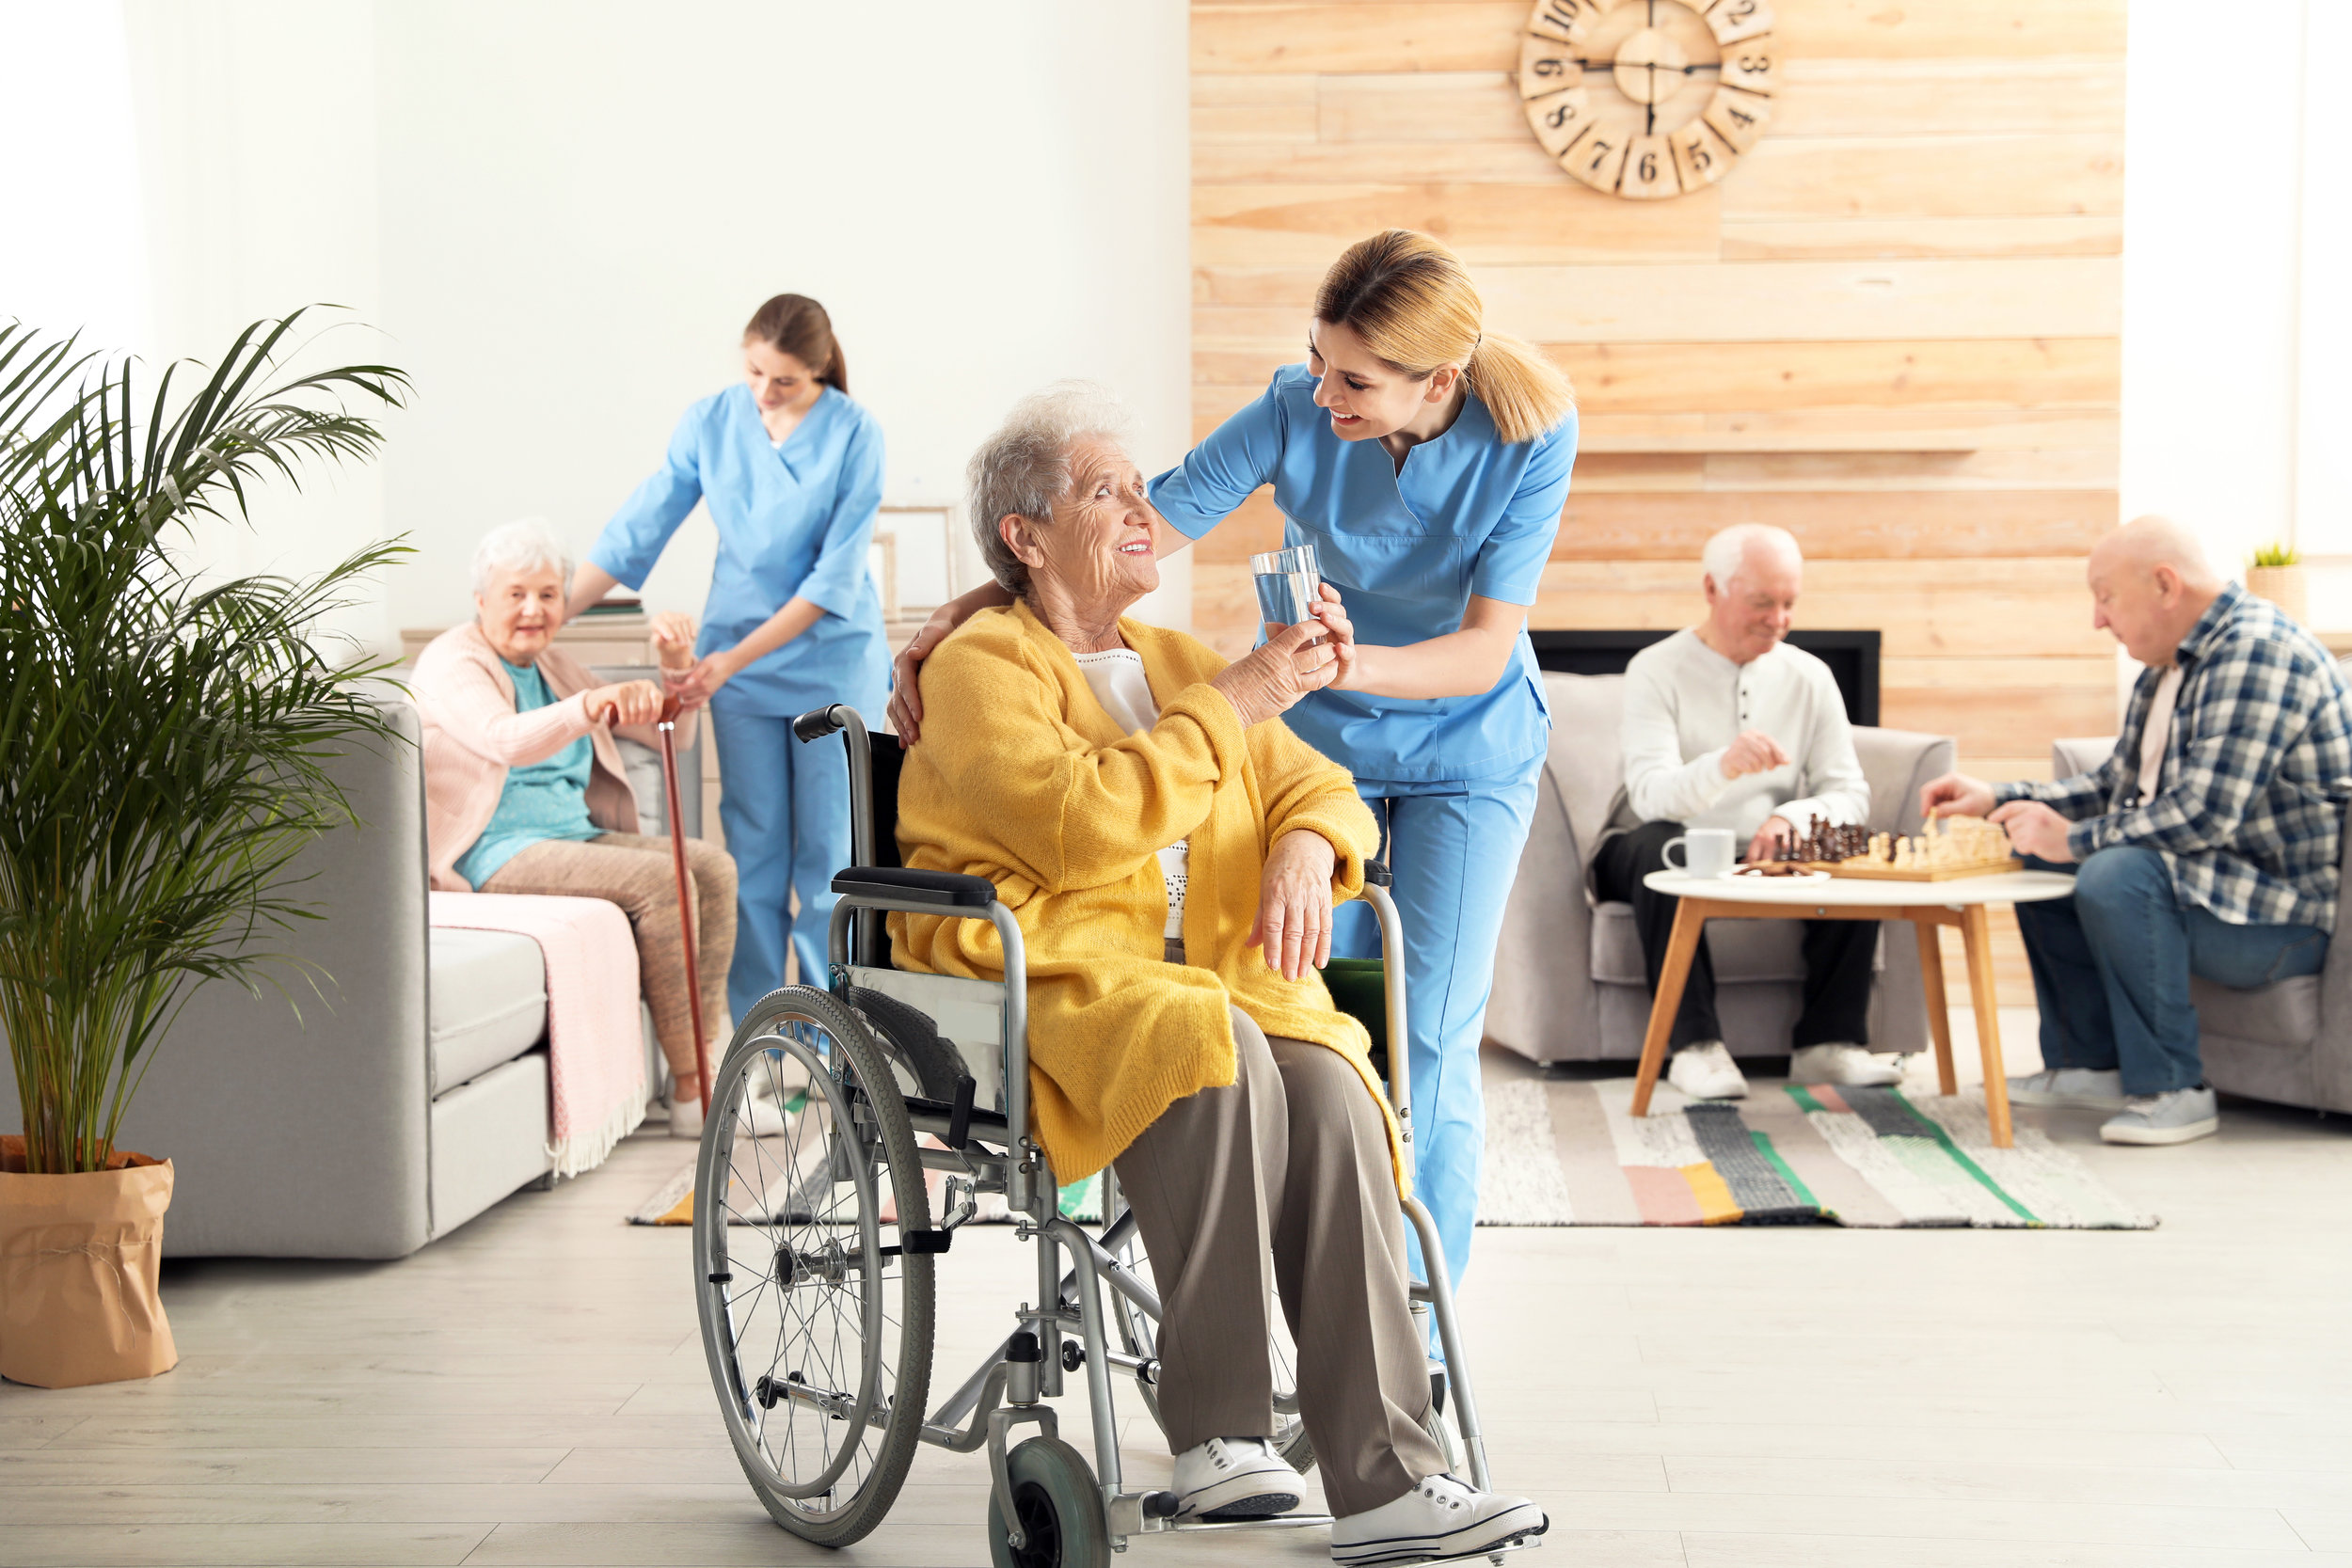 Skilled Nursing - AptusCare solutions help coordinate the care delivered by skilled nursing facilities to improve their quality and financial outcomes.